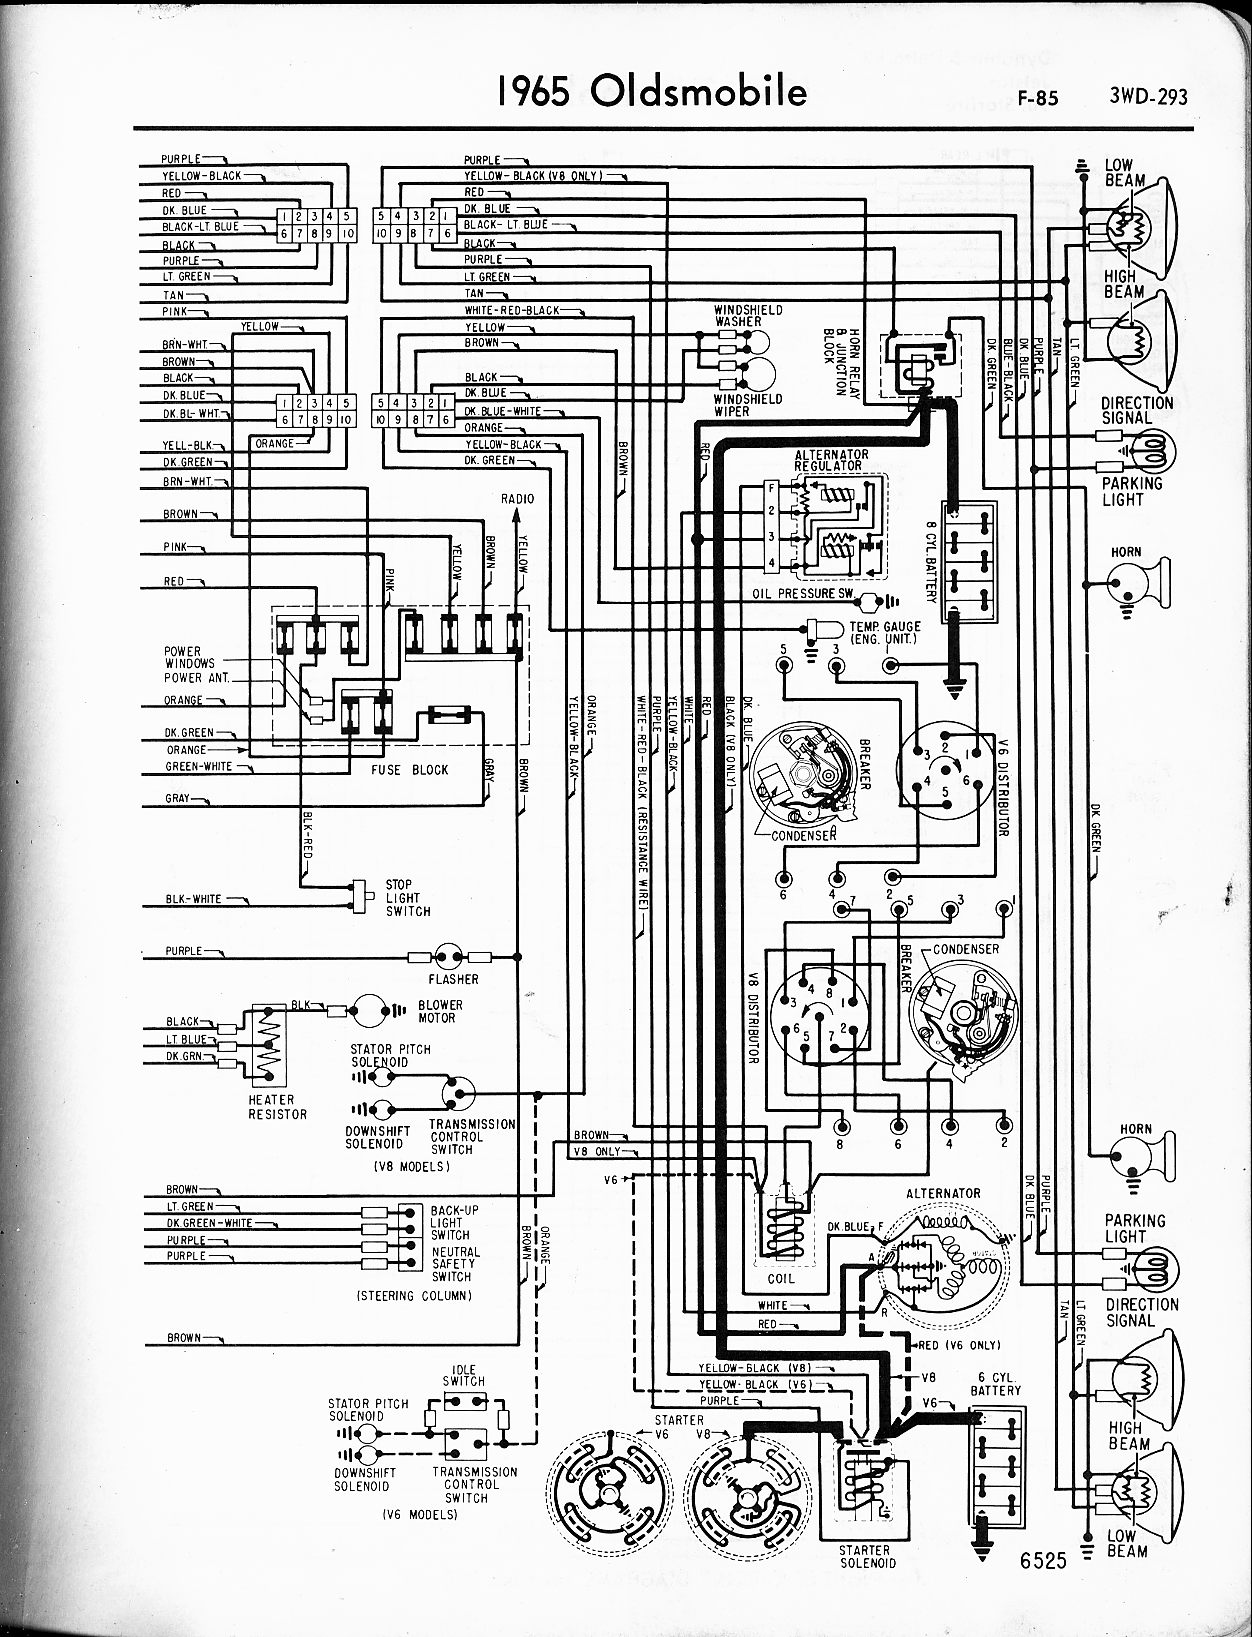 MWire5765 293 oldsmobile wiring diagrams the old car manual project Basic Turn Signal Wiring Diagram at n-0.co